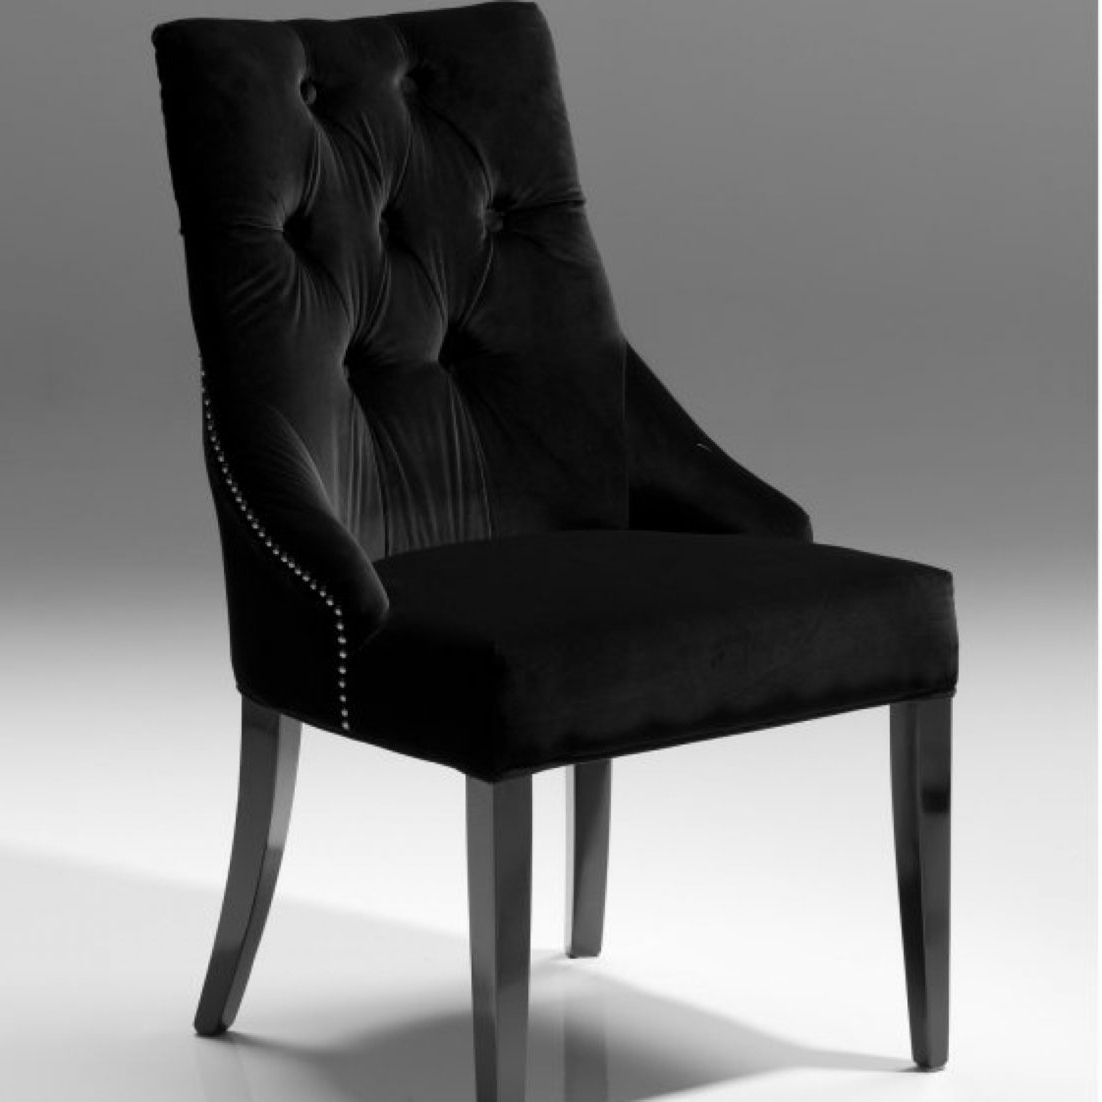 Dining Chairs Ebay inside Popular Black Dining Chairs Small Set Ebay Cheap With Wood Table Chair